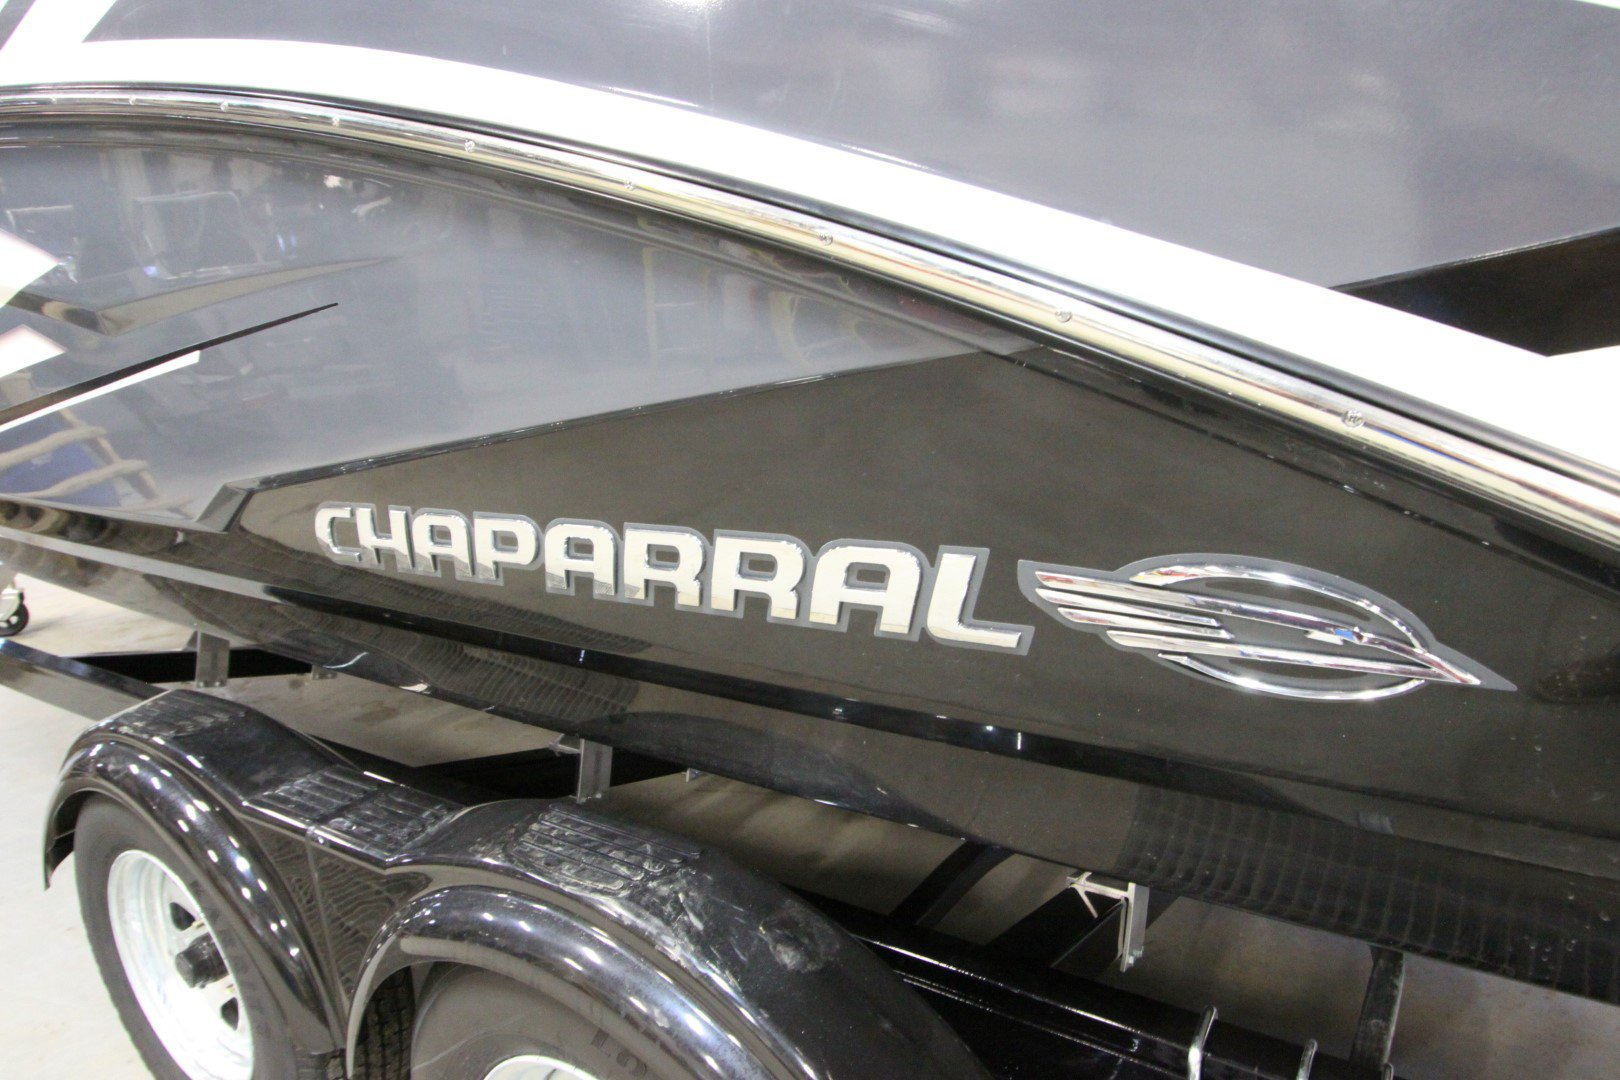 Chaparral 2430 VRX - IMG_9543